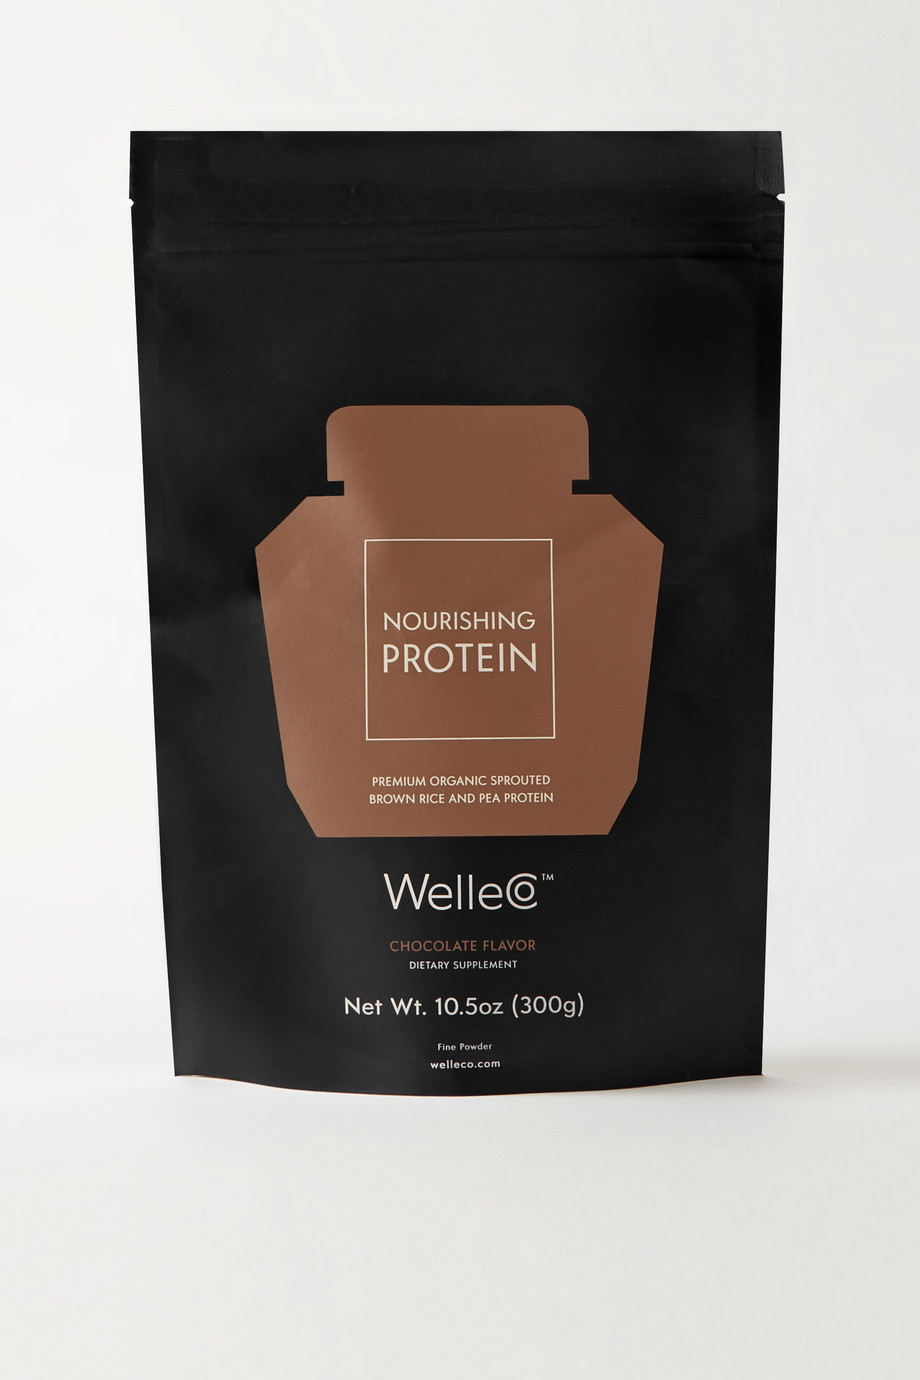 WelleCo Nourishing Protein - Peruvian Chocolate, 300g